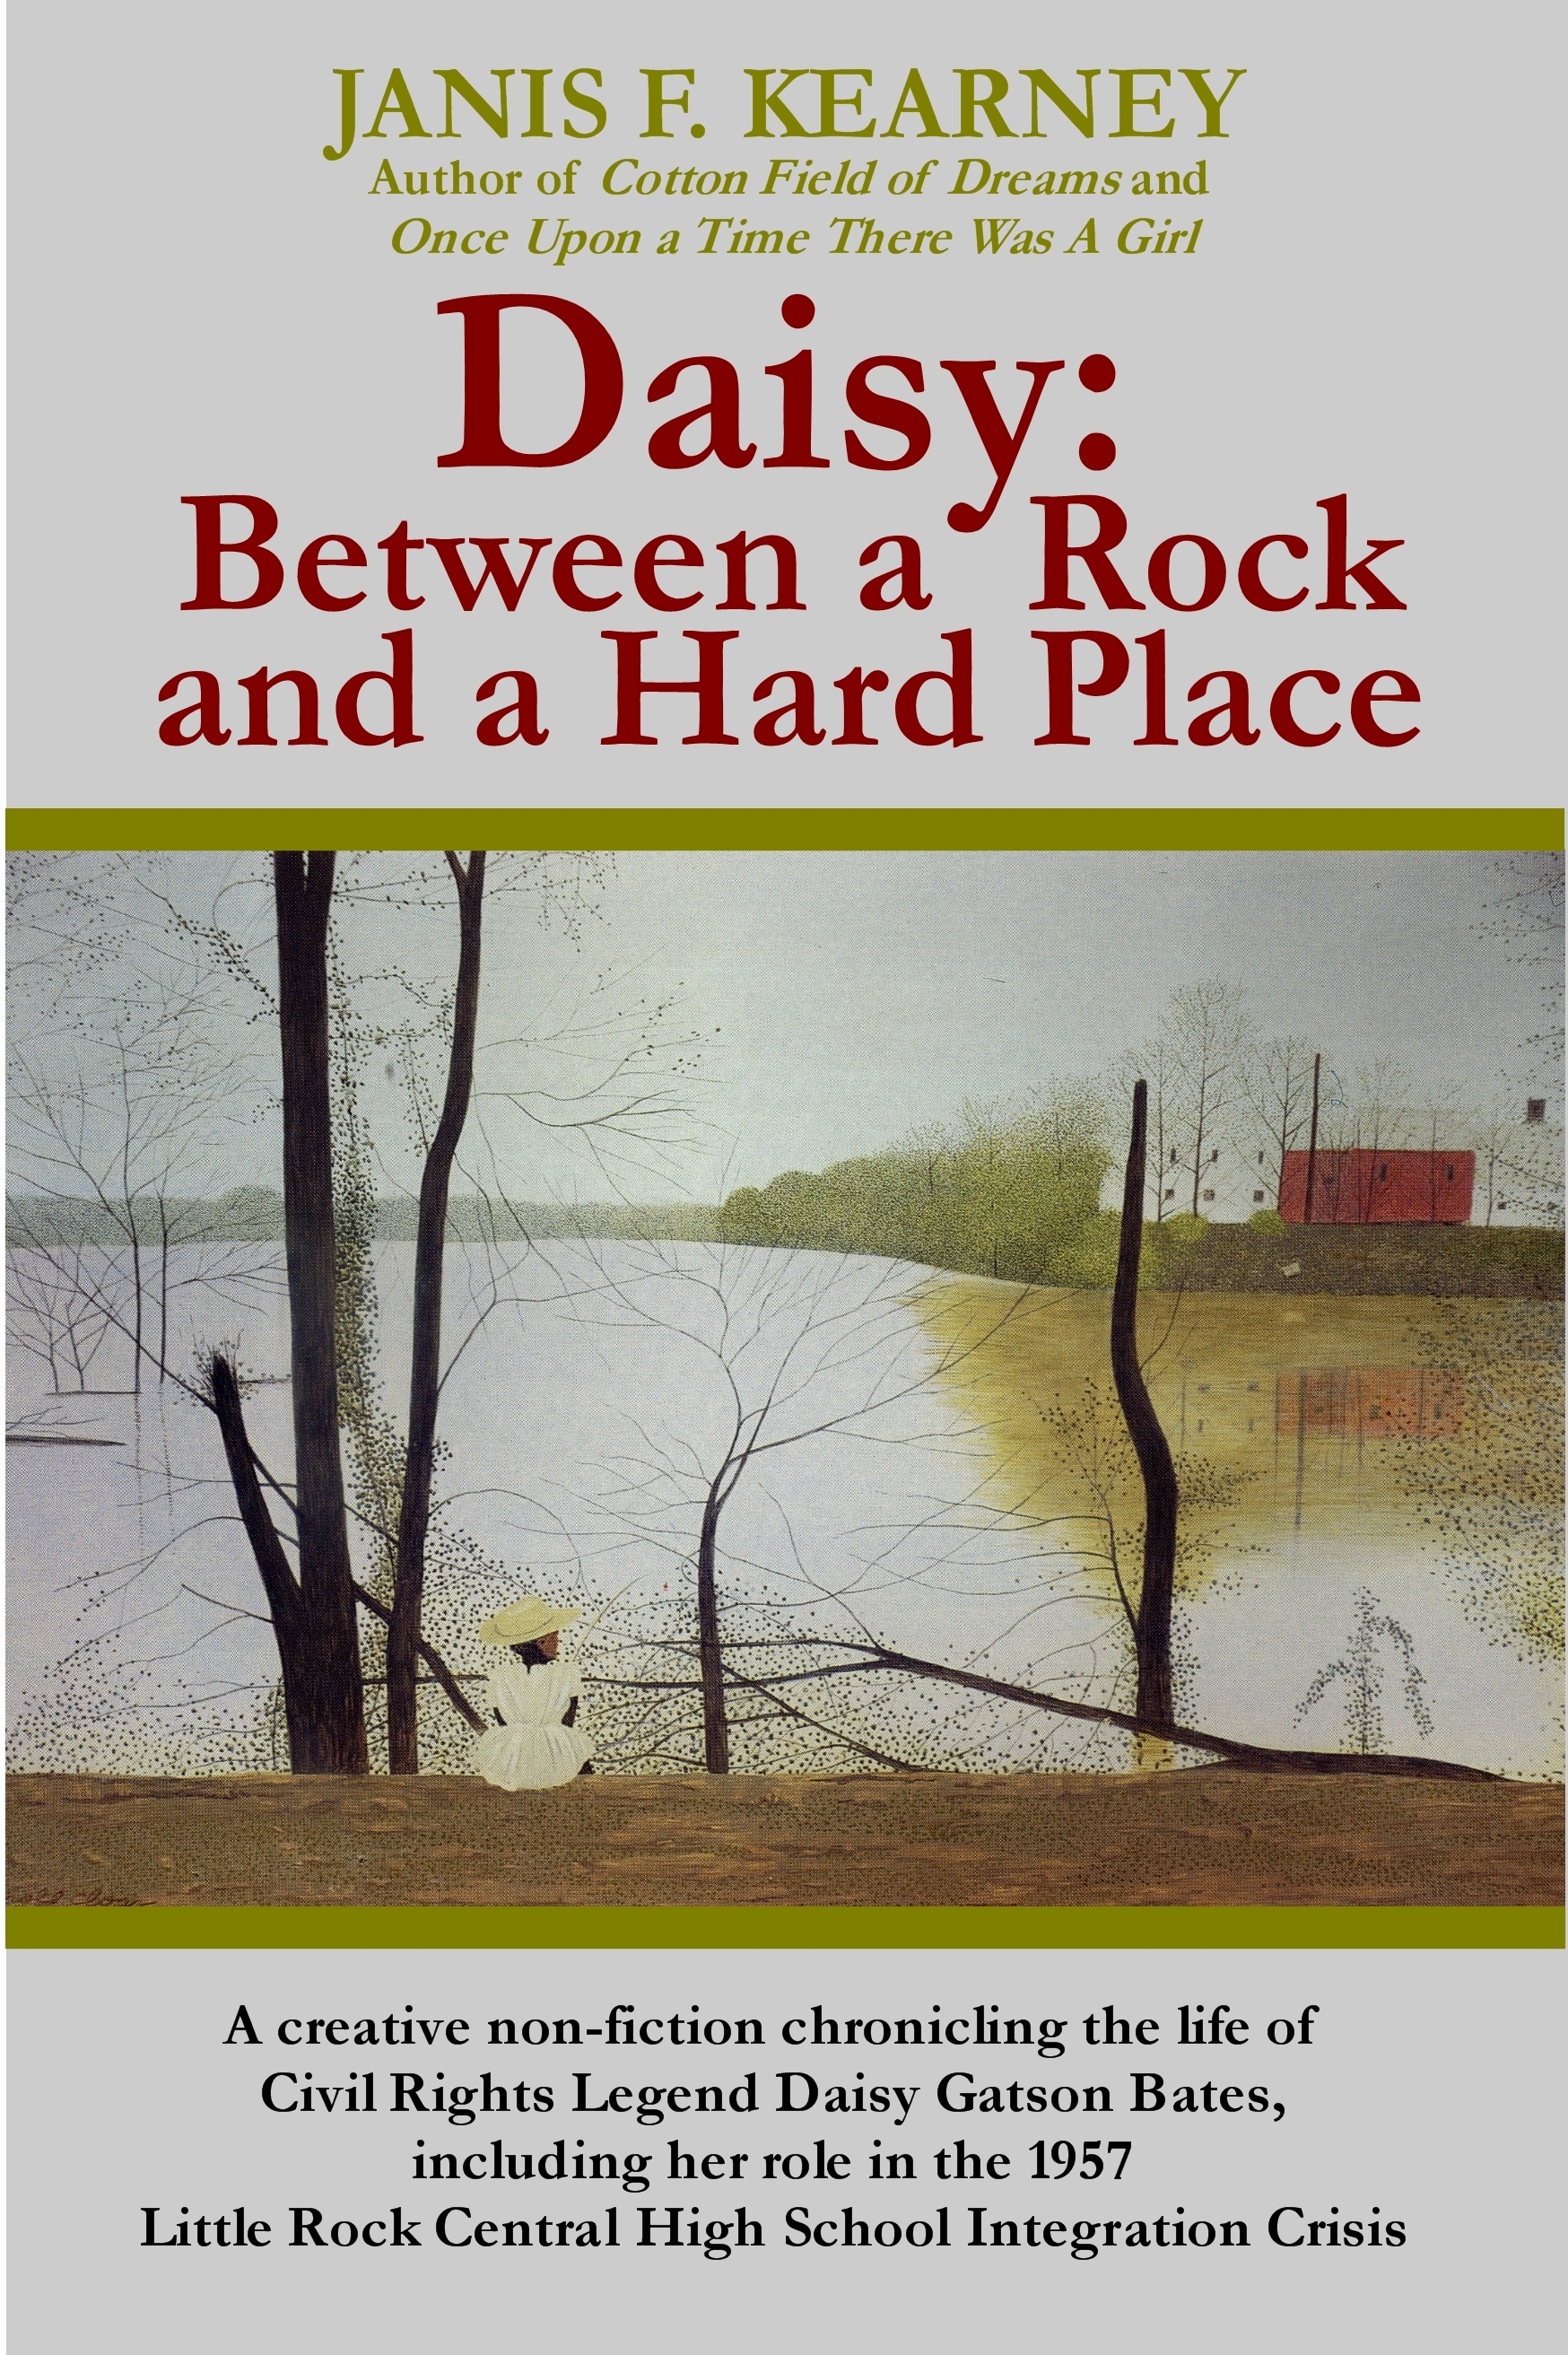 Daisy: Between a Rock and a Hard Place Book Cover